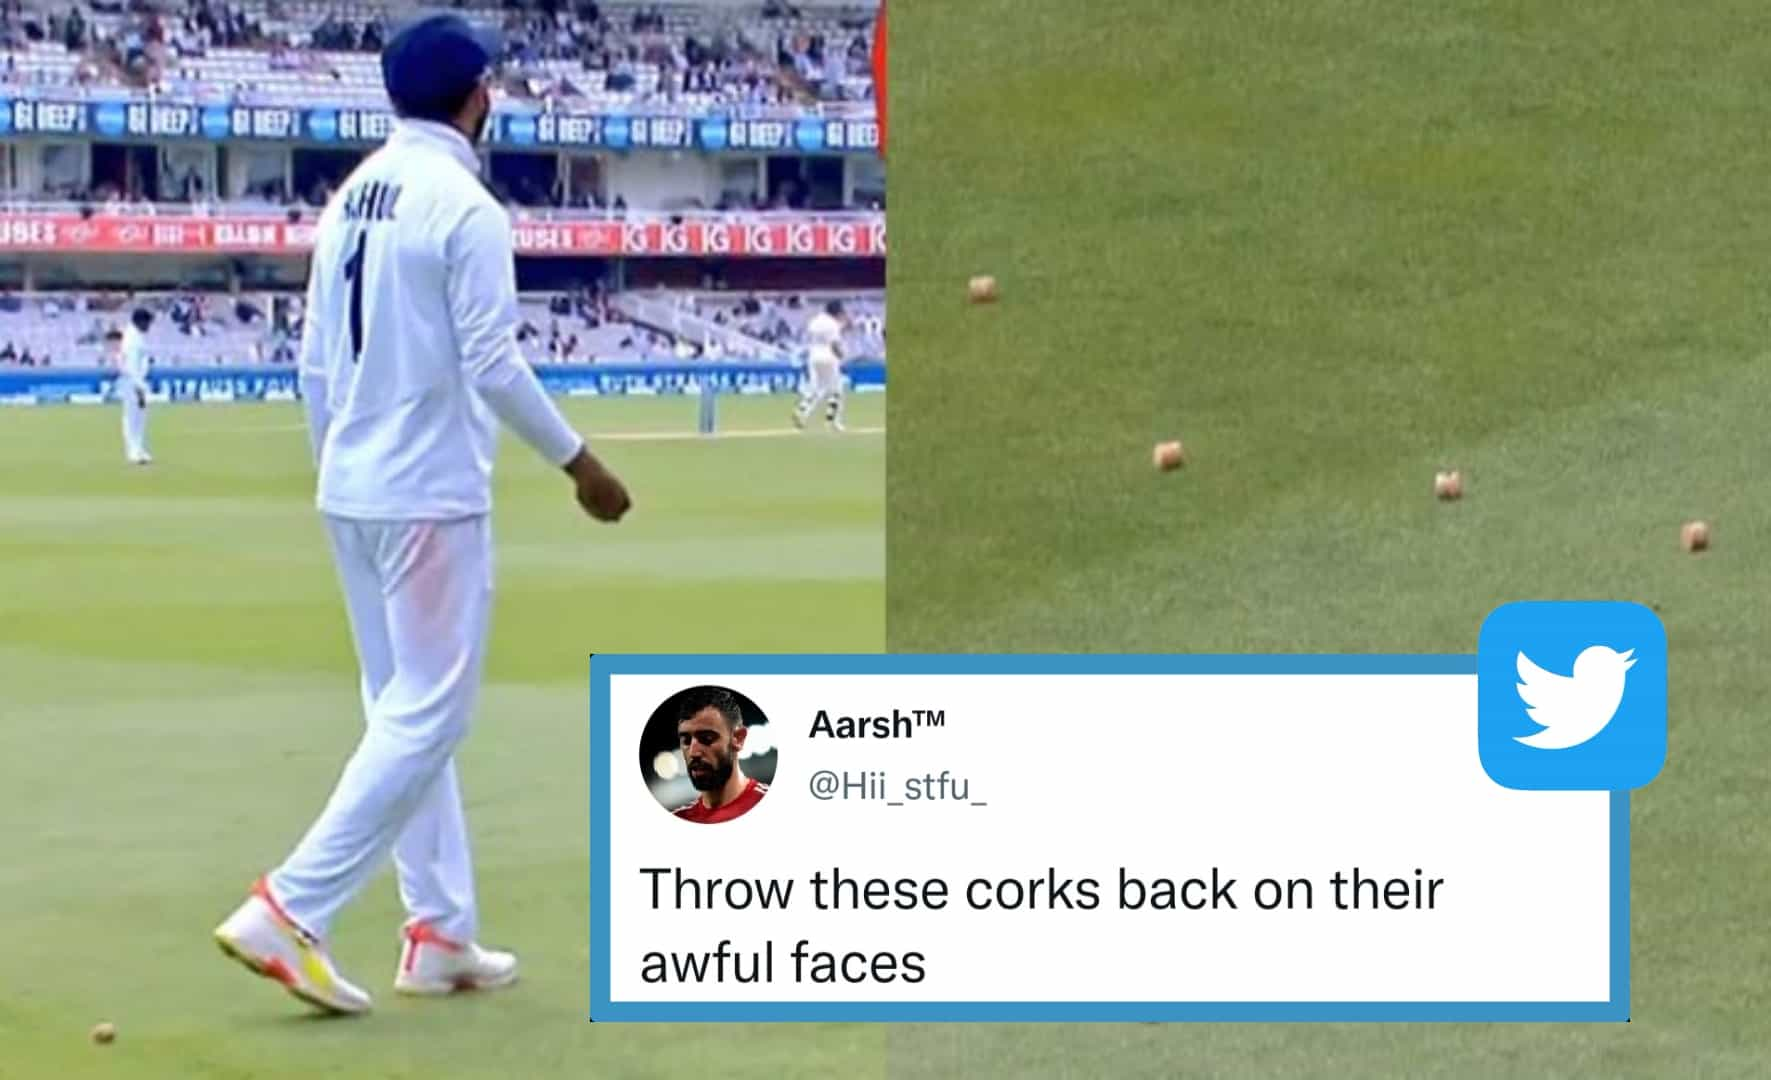 """""""Throw It Back On Their Awful Faces"""" - Twitterati Reacts As Drunk England Fans Hit KL Rahul With Champagne Corks in 2nd Test"""